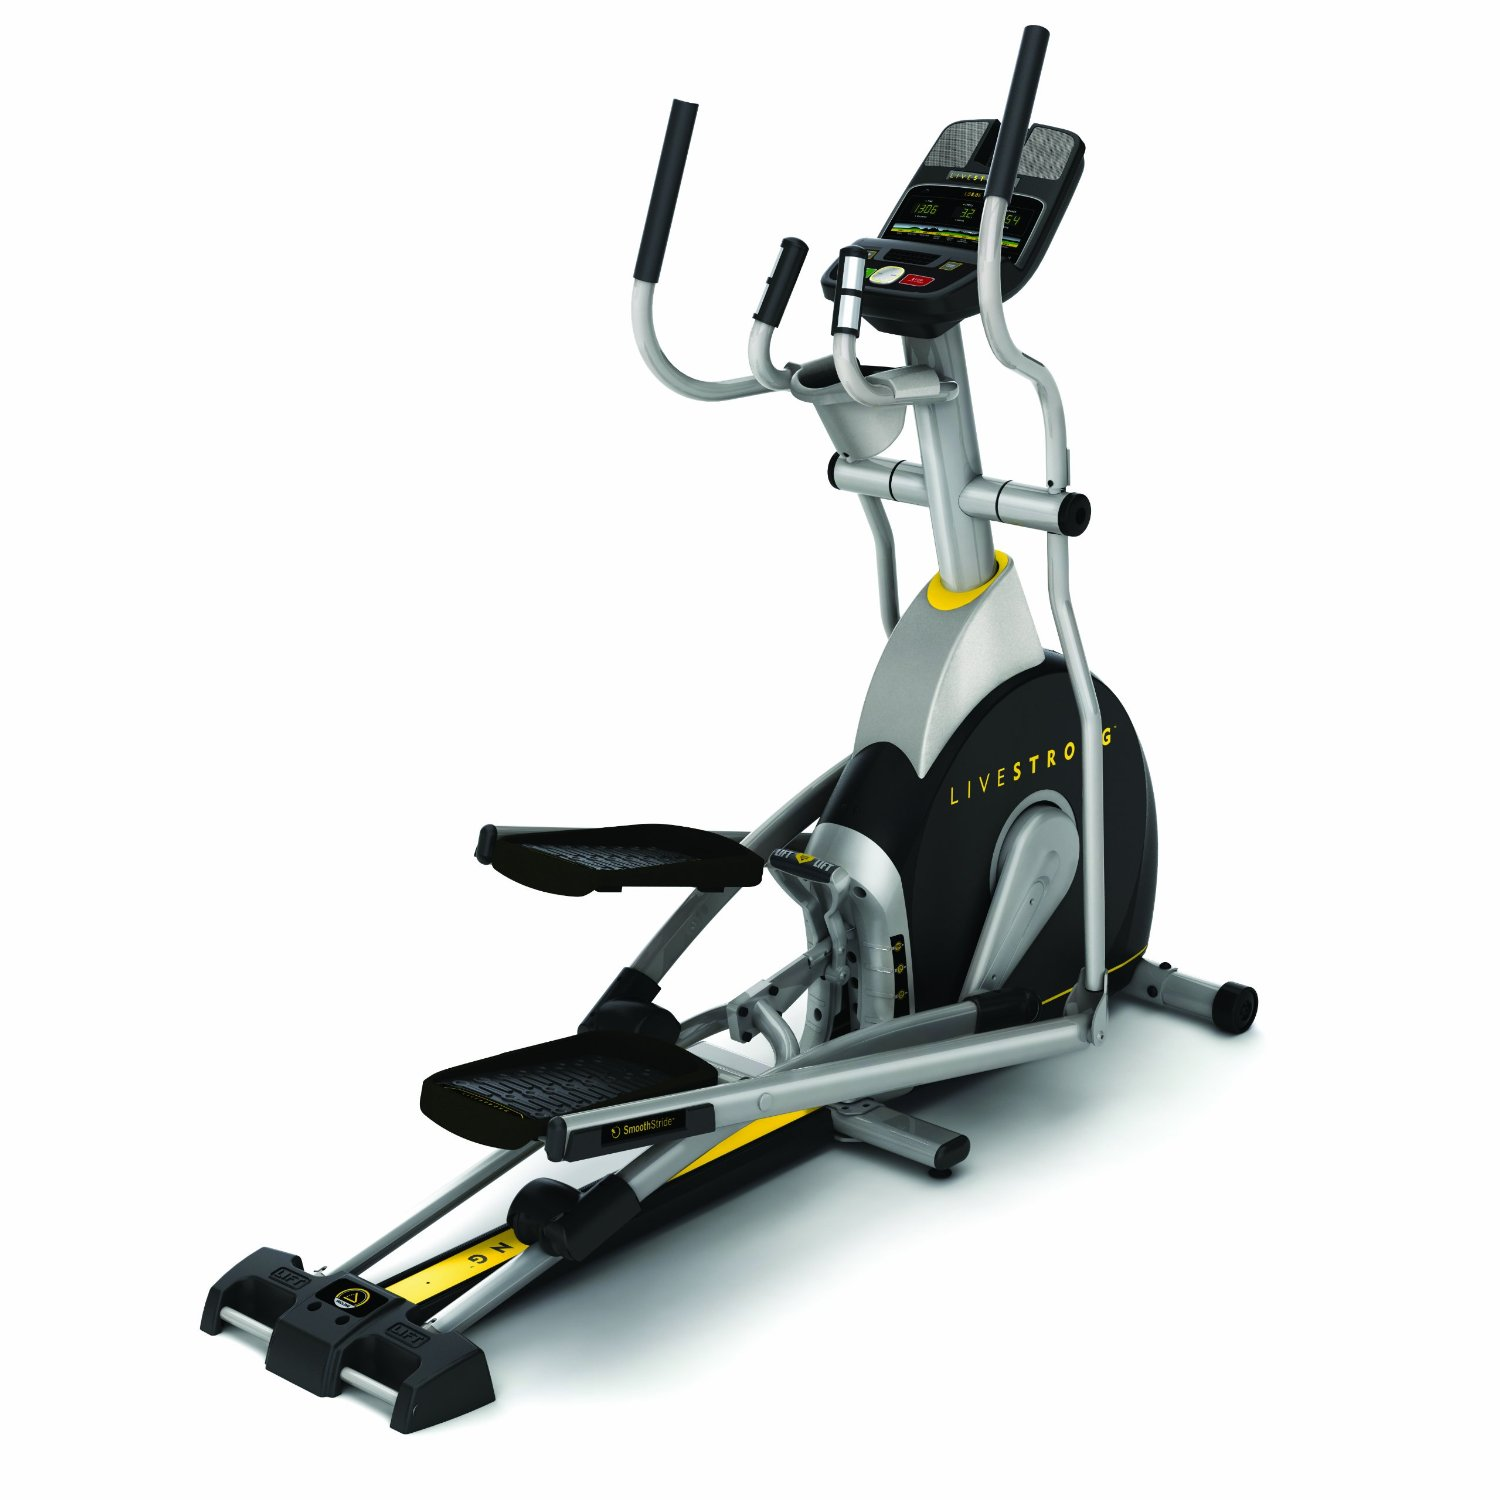 Livestrong LS8.0E Elliptical Trainer Review